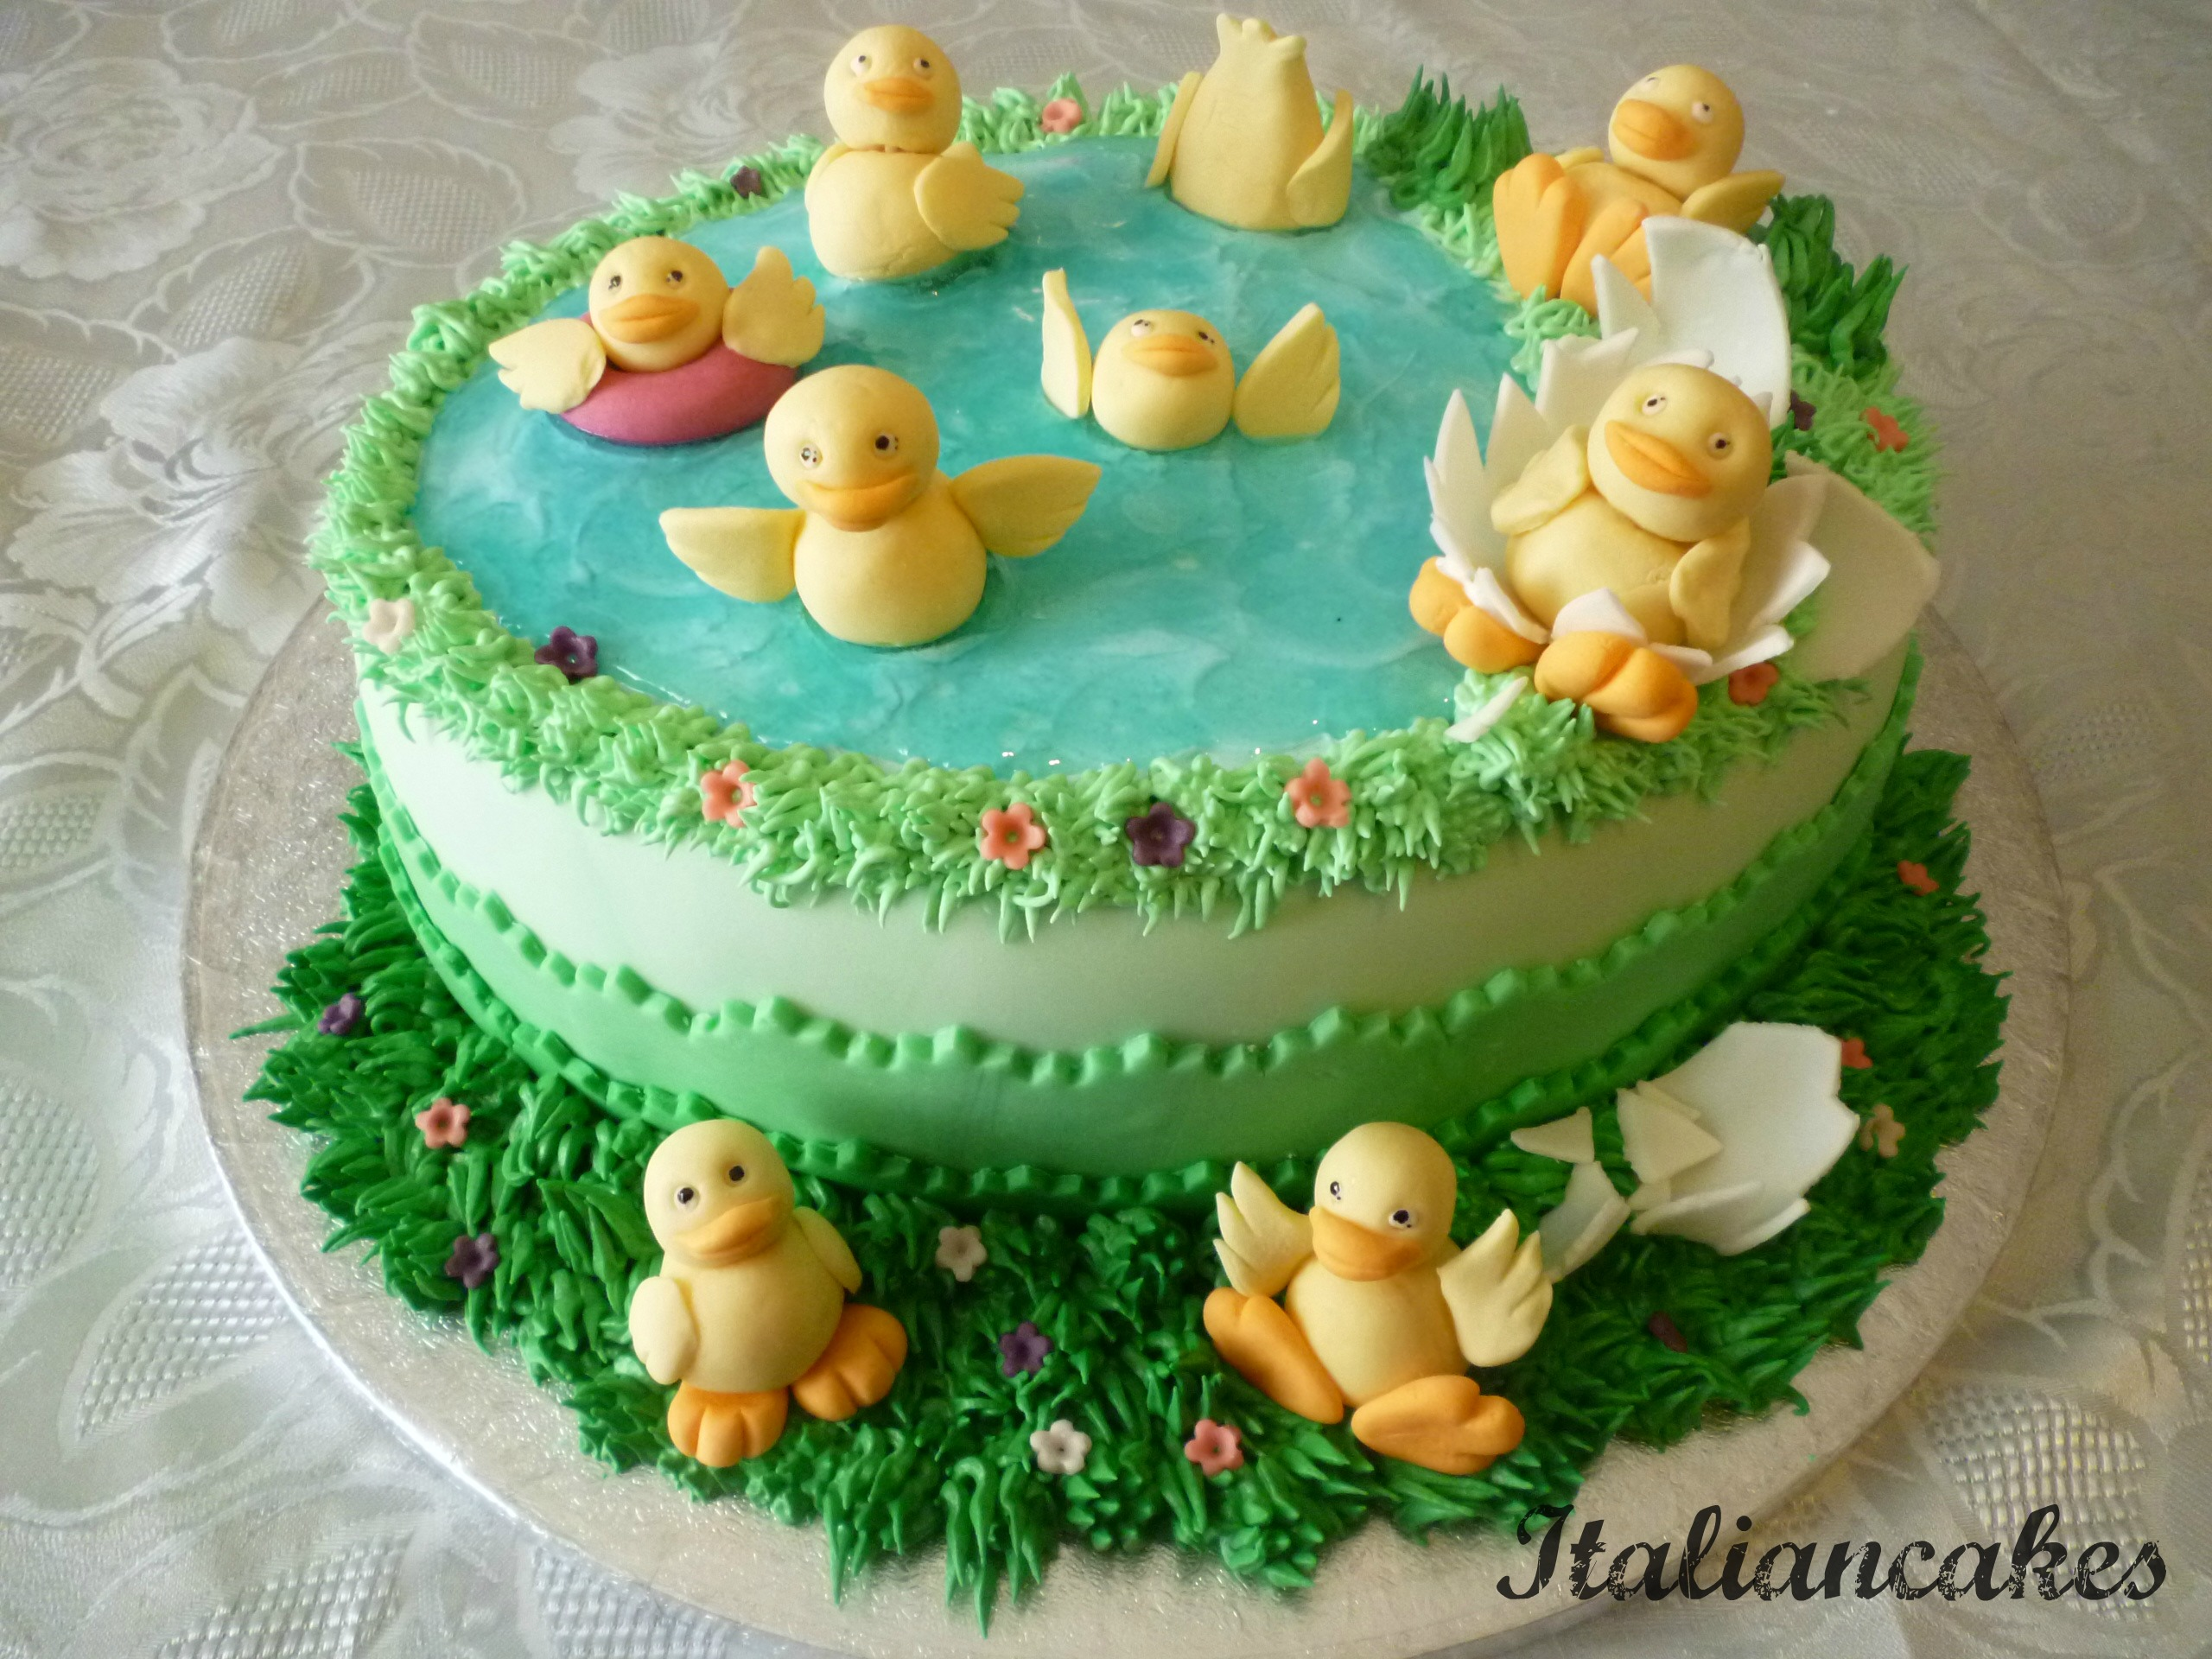 Awesome Bday Cake Images : 20 Pretty Awesome Kiddie Birthday Cakes - Page 5 of 20